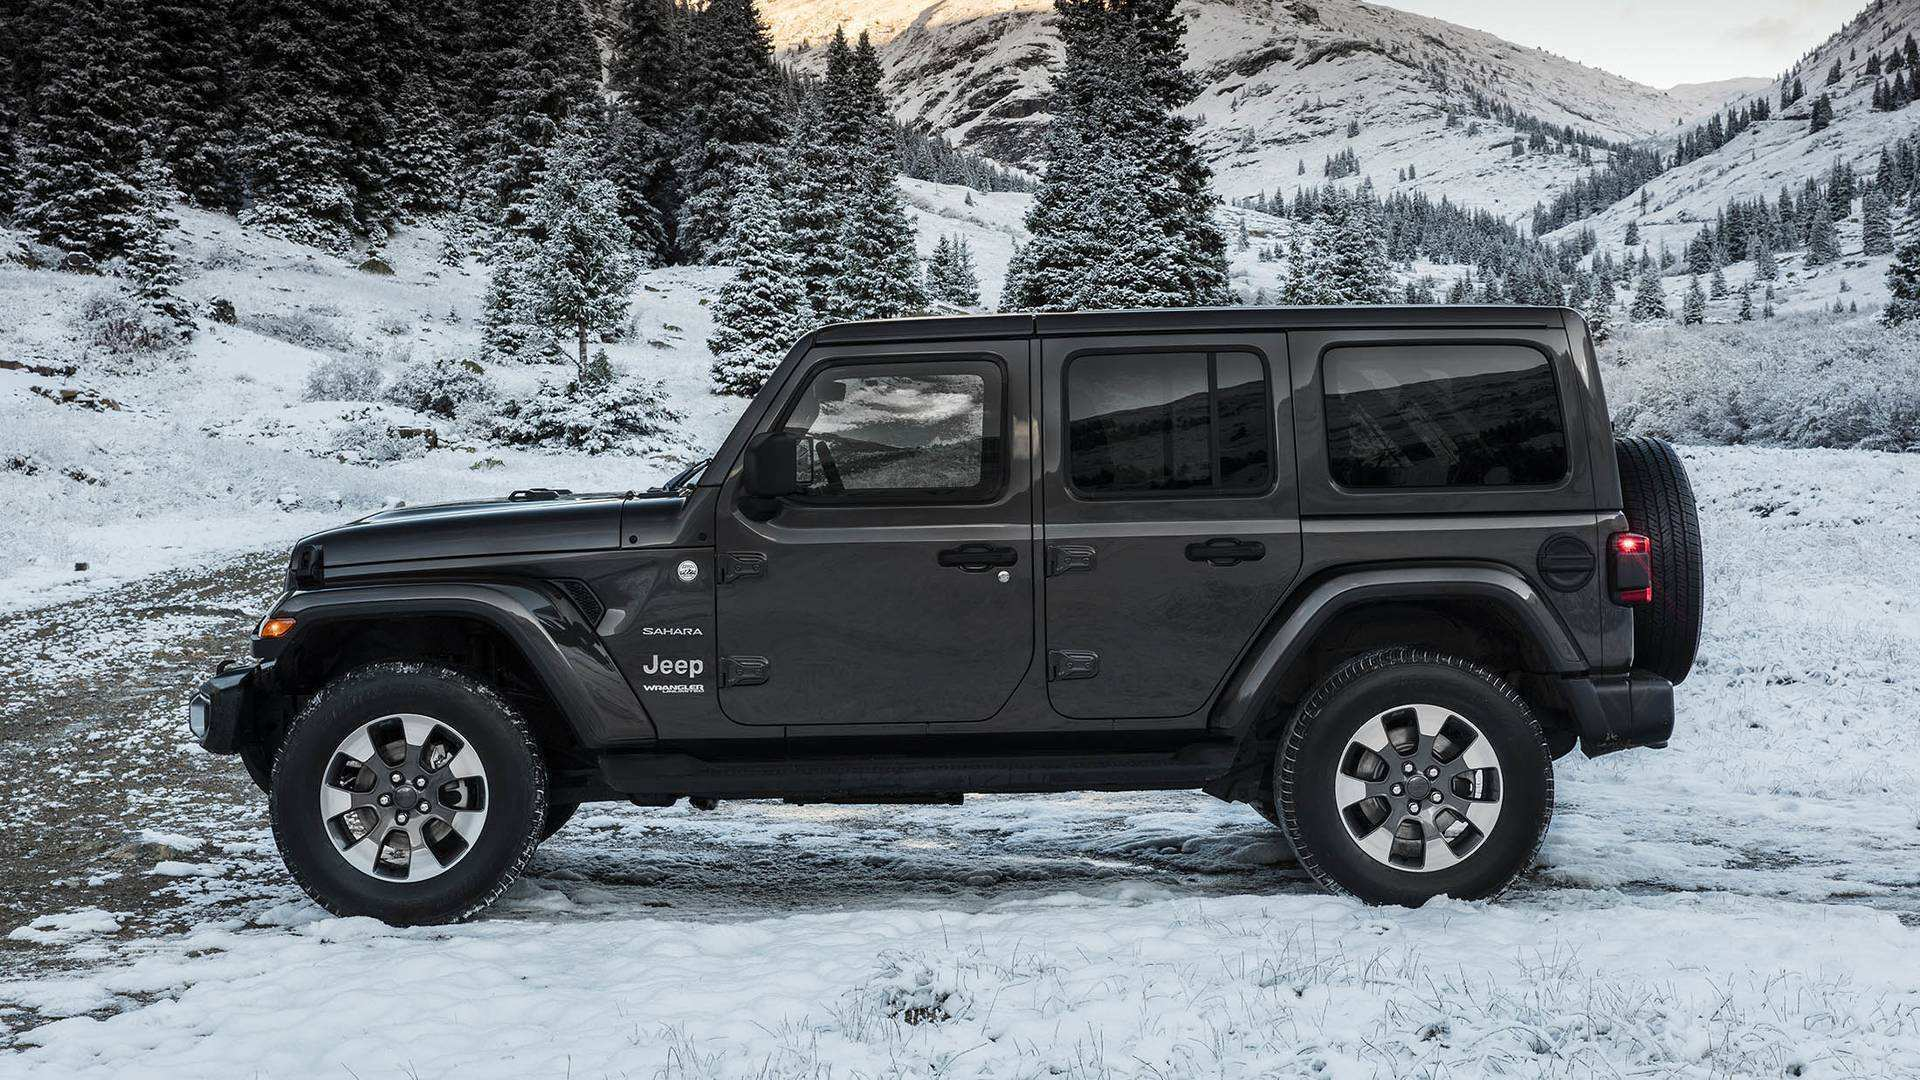 56 Best Review Jeep Wrangler 2020 Interior by Jeep Wrangler 2020